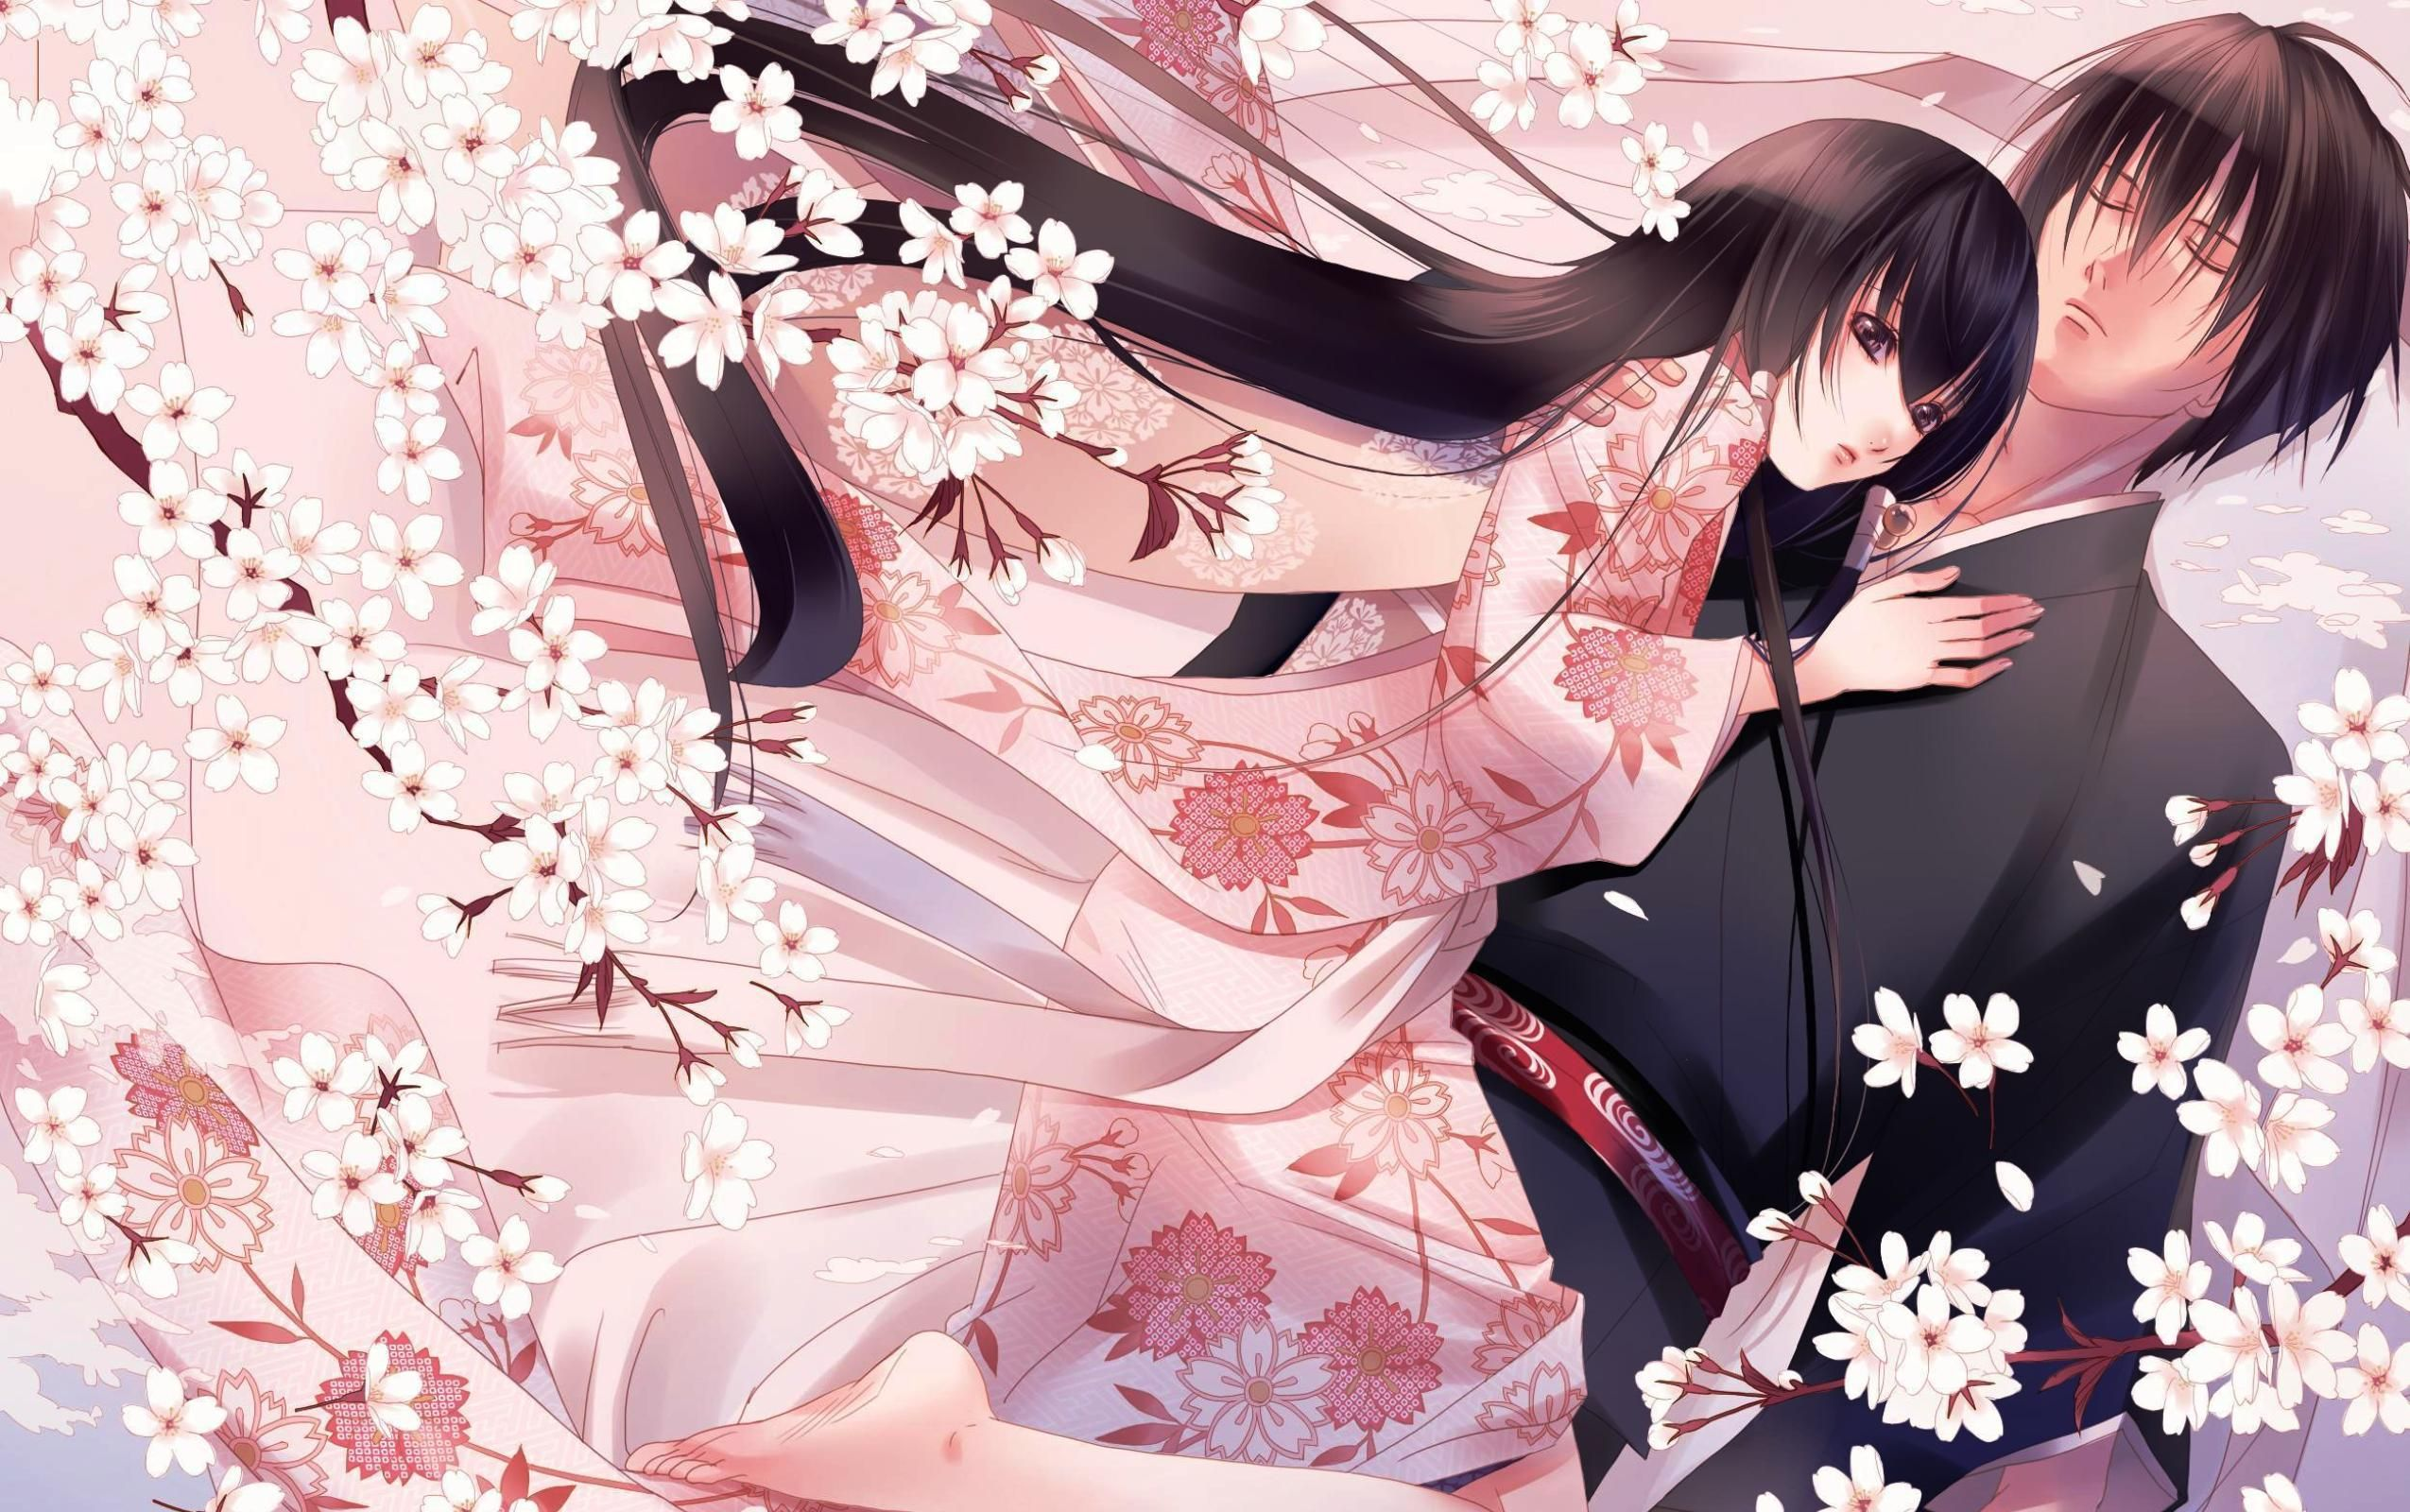 Anime CouplePink Sakura Flower Wallpaper Anime Couples